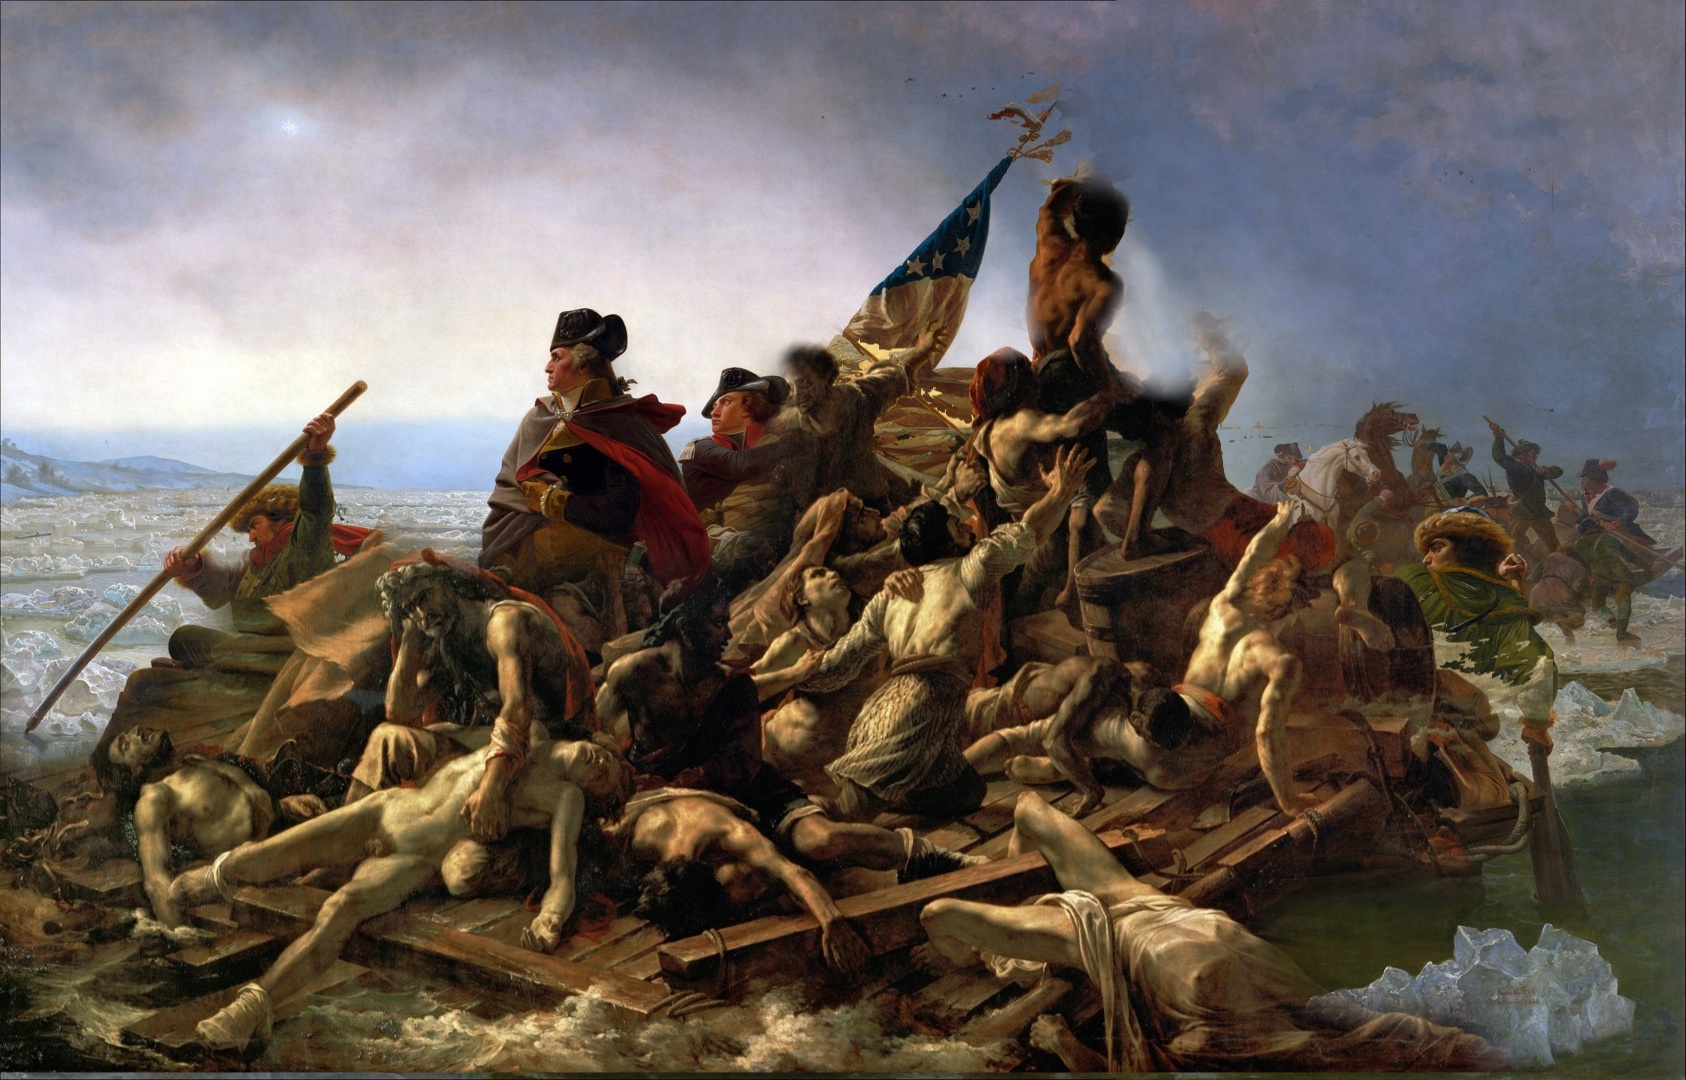 raft of the medusa essay The raft of the medusa by théodore géricault free essay, term paper and book report when i first looked at the raft of the medusa , the first few things that came to mind were suffering struggling, tension, and hope.